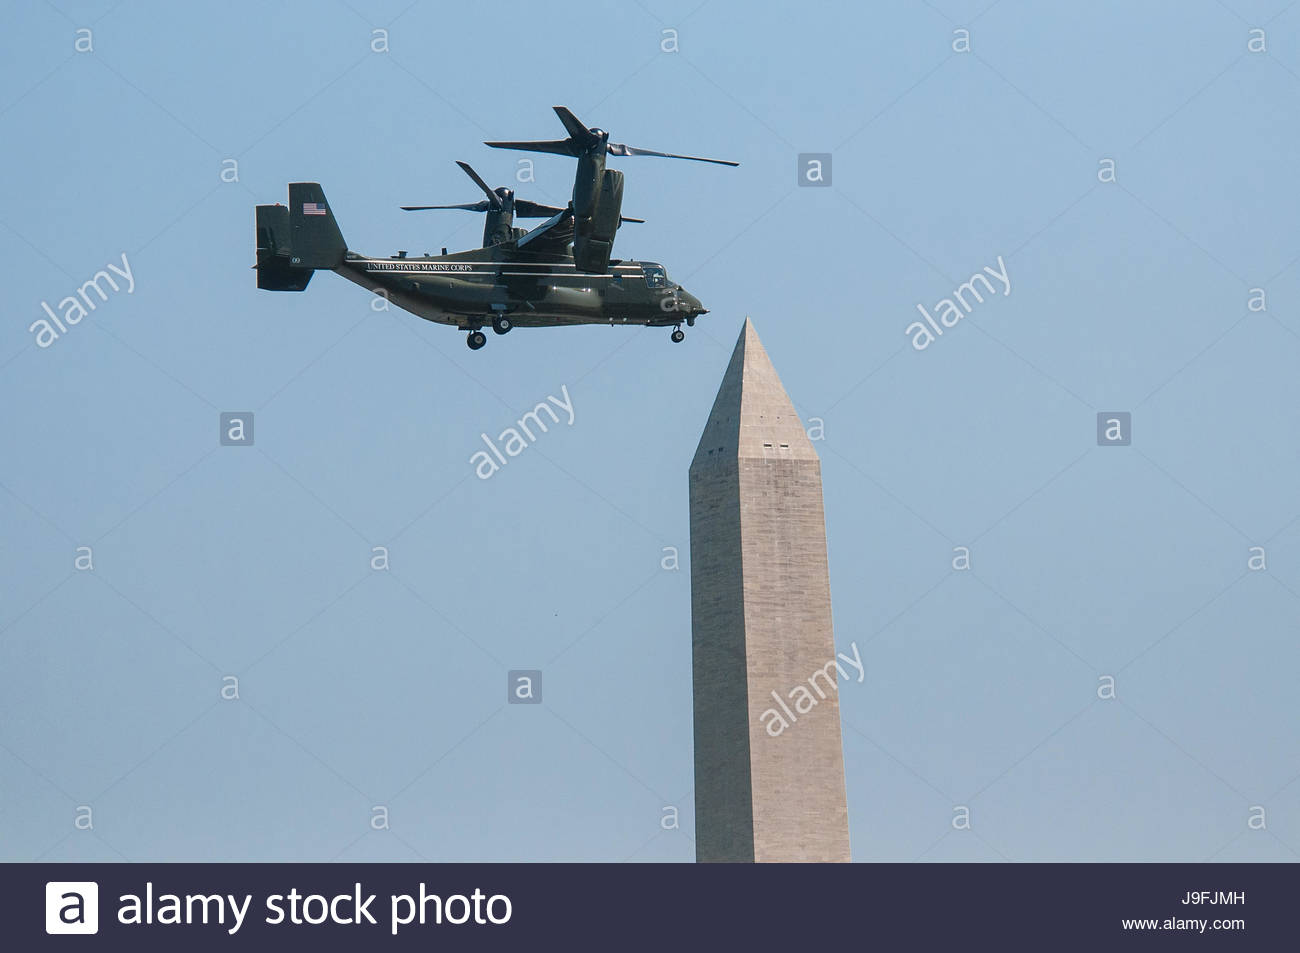 A military helicopter flies past the Washington Monument. - Stock Image